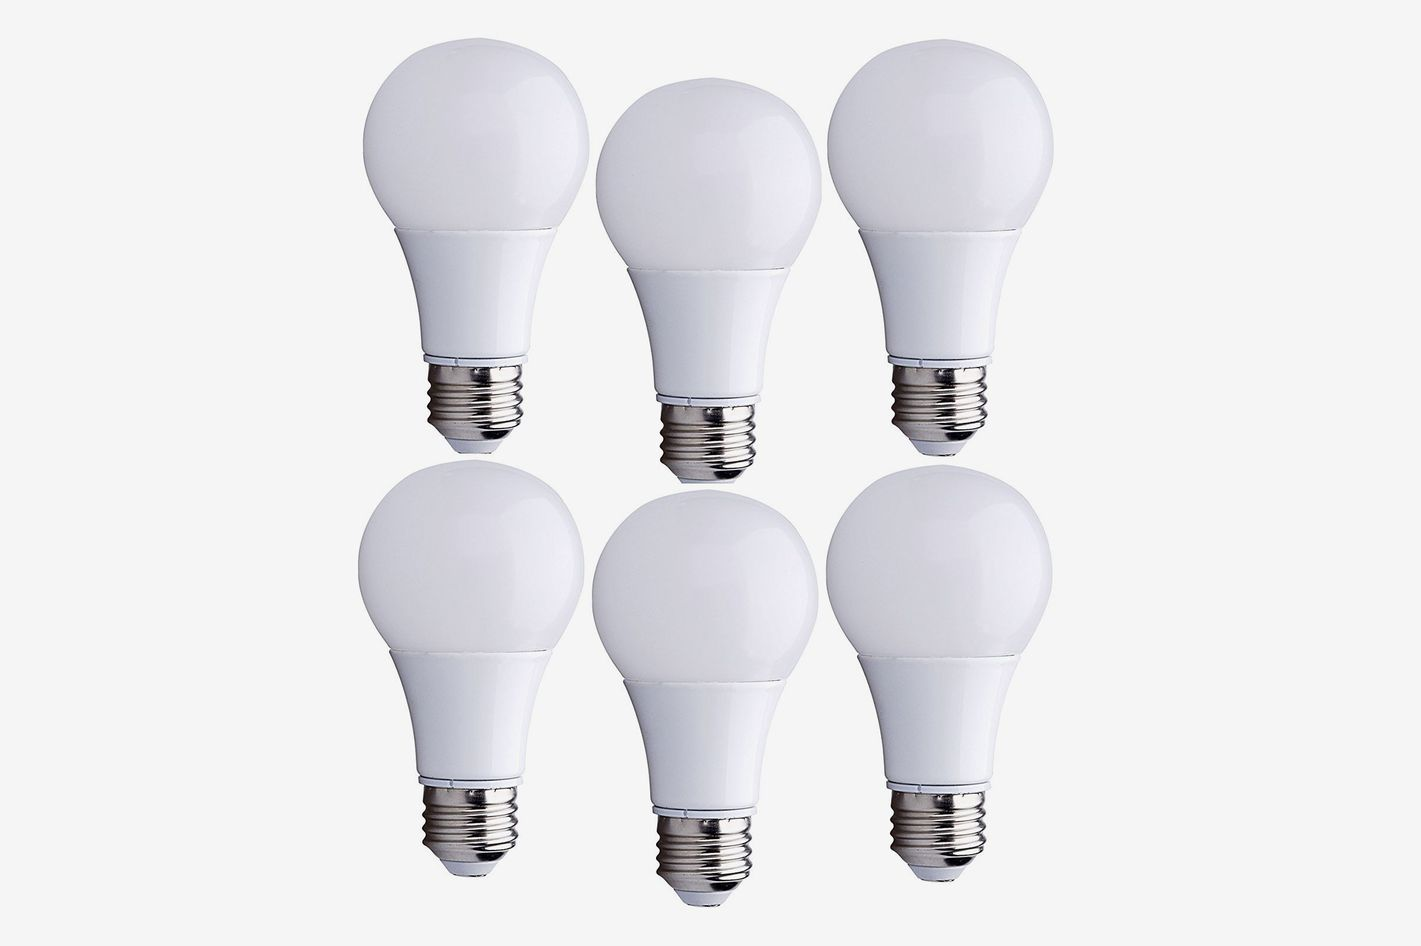 Bioluz LED 40 Watt LED Light Bulbs ECO Series Warm White 2700K (6 Pack)